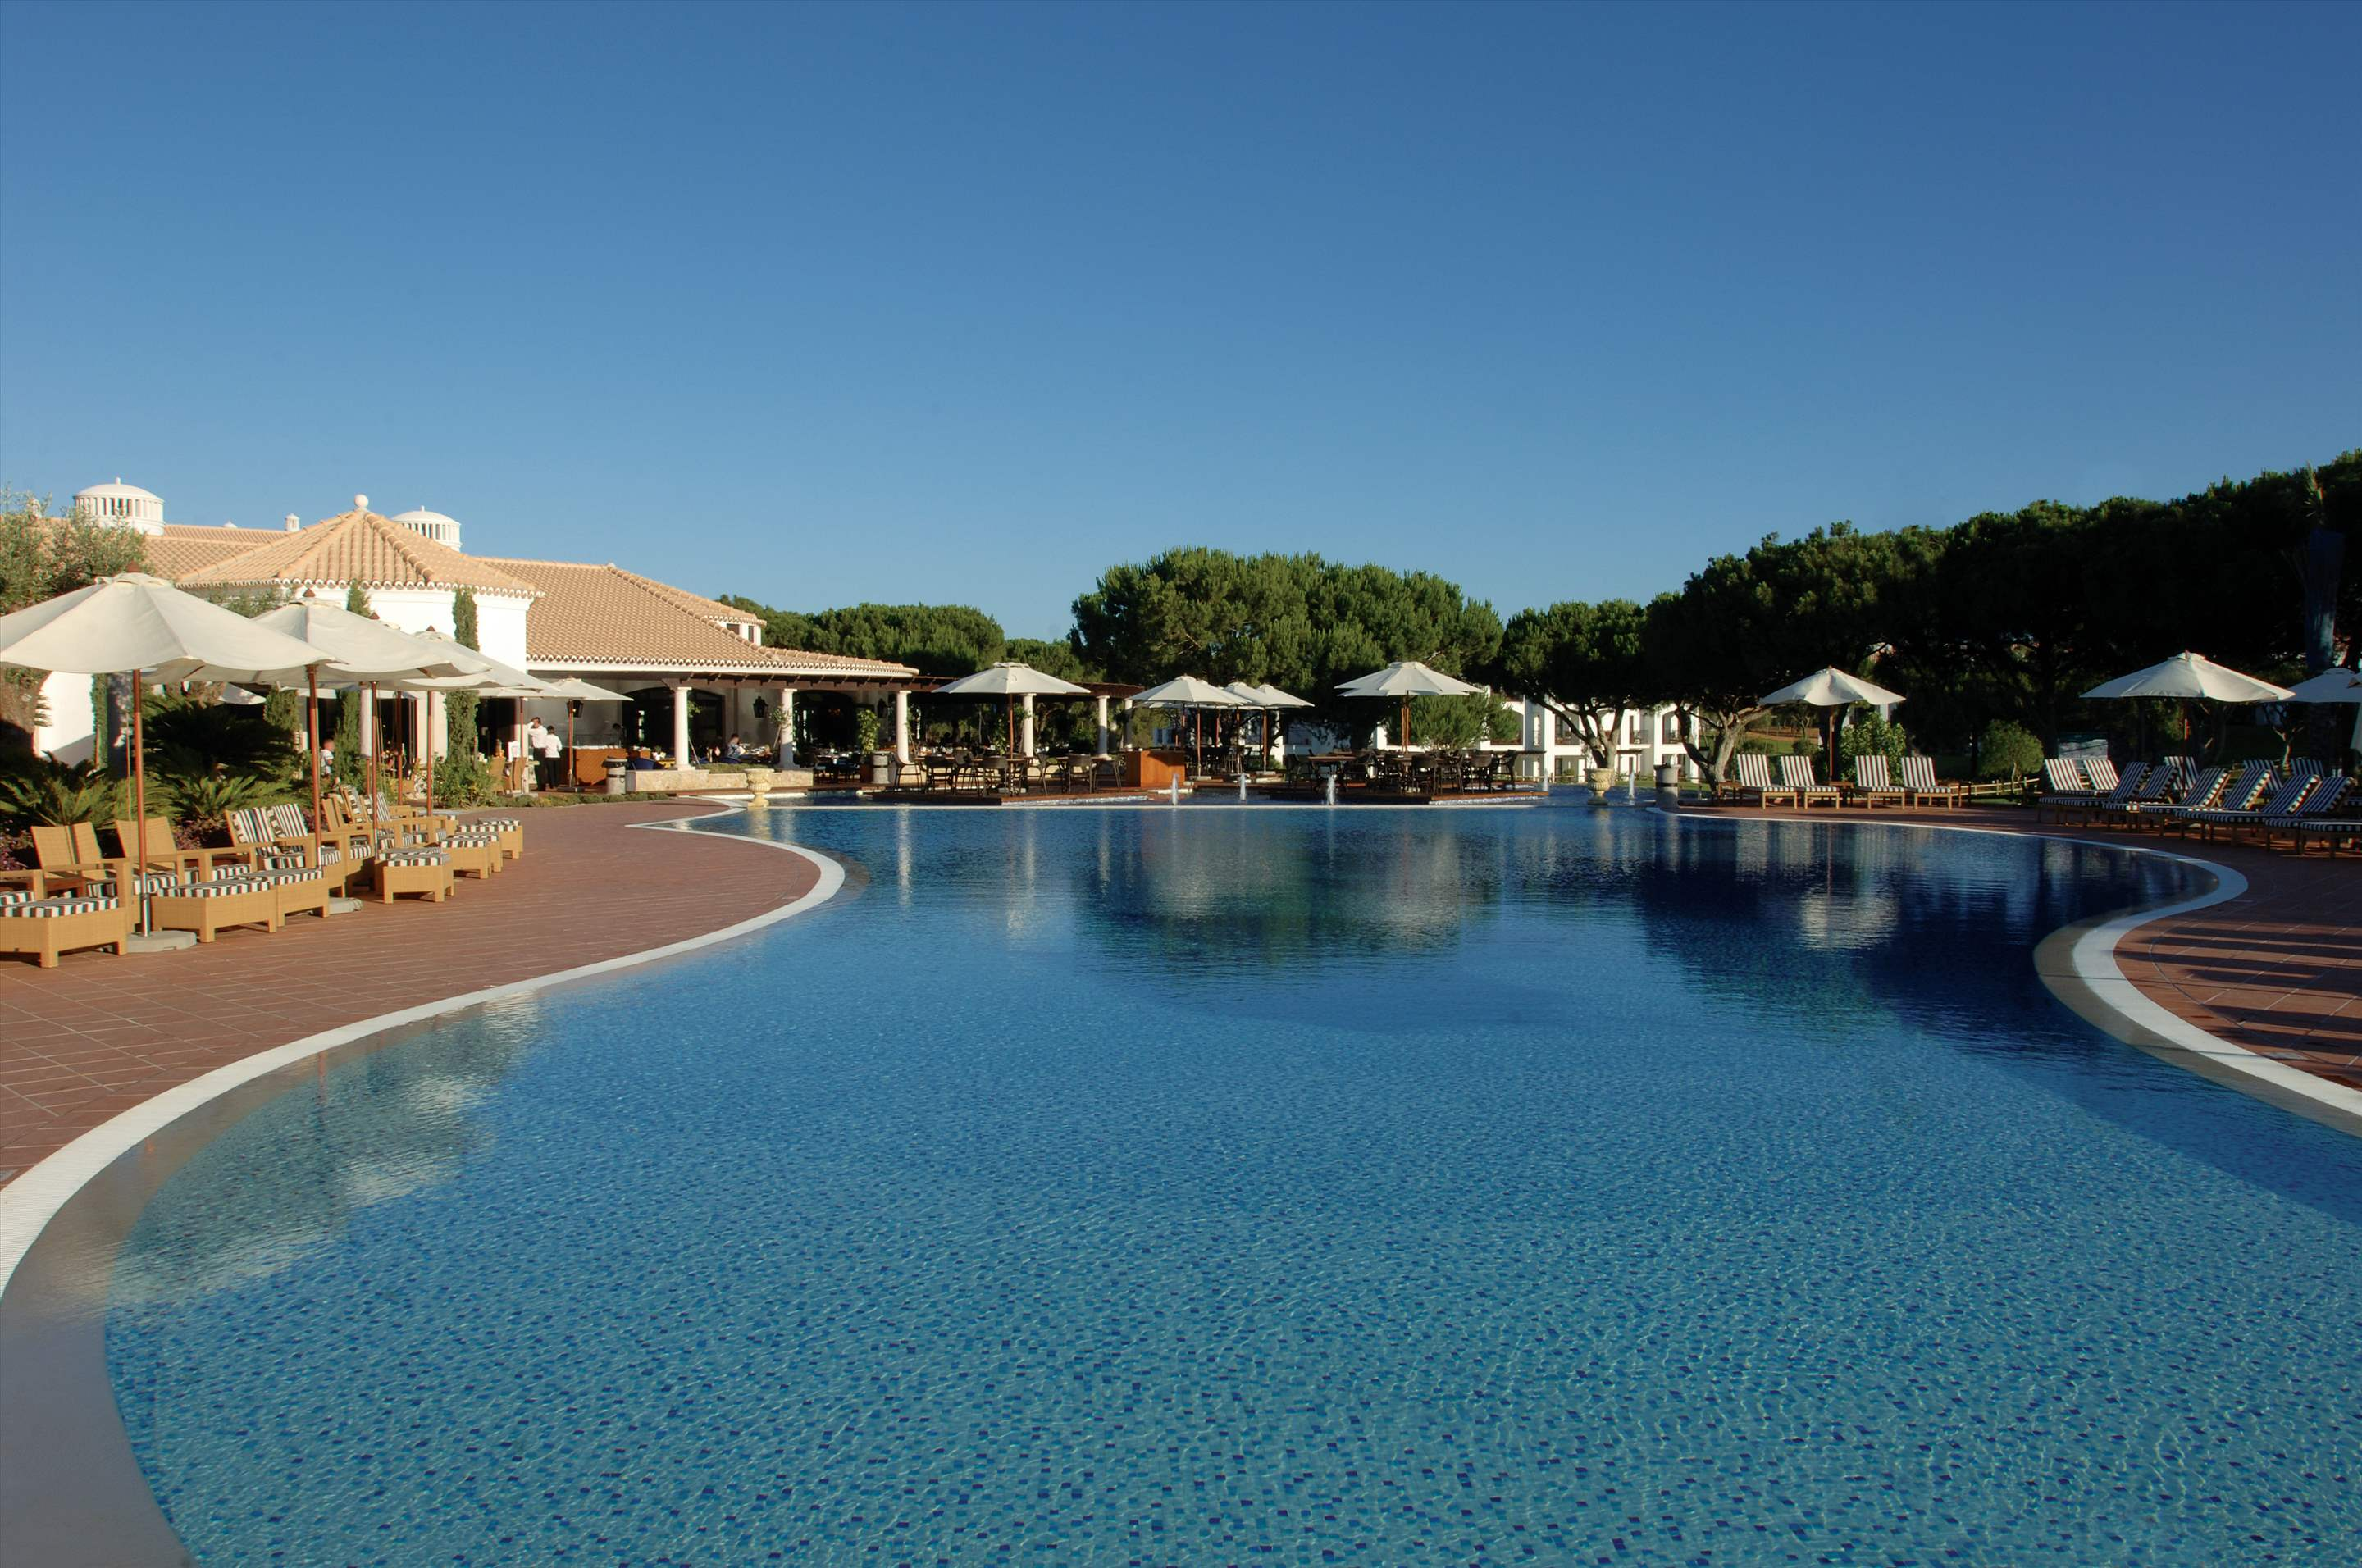 Pine Cliffs Suites, 3 Bedroom Penthouse, room only basis, 3 bedroom apartment in Pine Cliffs Resort, Algarve Photo #1